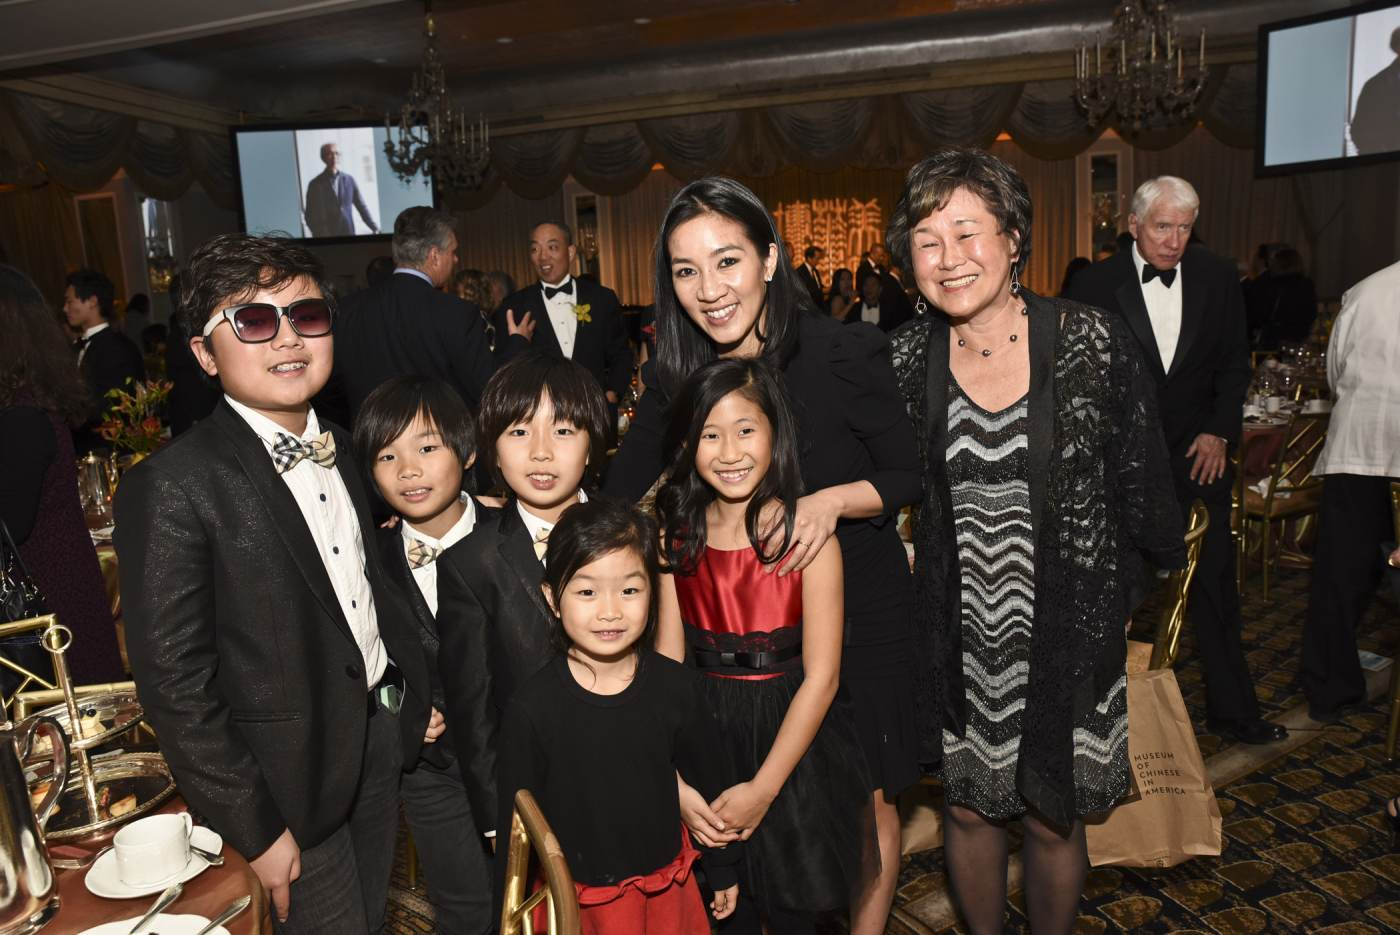 23 August 2019 Posted. Joyous String Quartet, Michell Kwan, and MOCA Board Member Sandy Lee at the 2015 MOCA Legacy Awards Gala, Museum of Chinese in America (MOCA) Institutional Archives. Joyous String Quartet乐队、关颖珊和MOCA董事会成员Sandy Lee在2015年MOCA年度传承颁奖晚宴上,美国华人博物馆(MOCA)机构馆藏